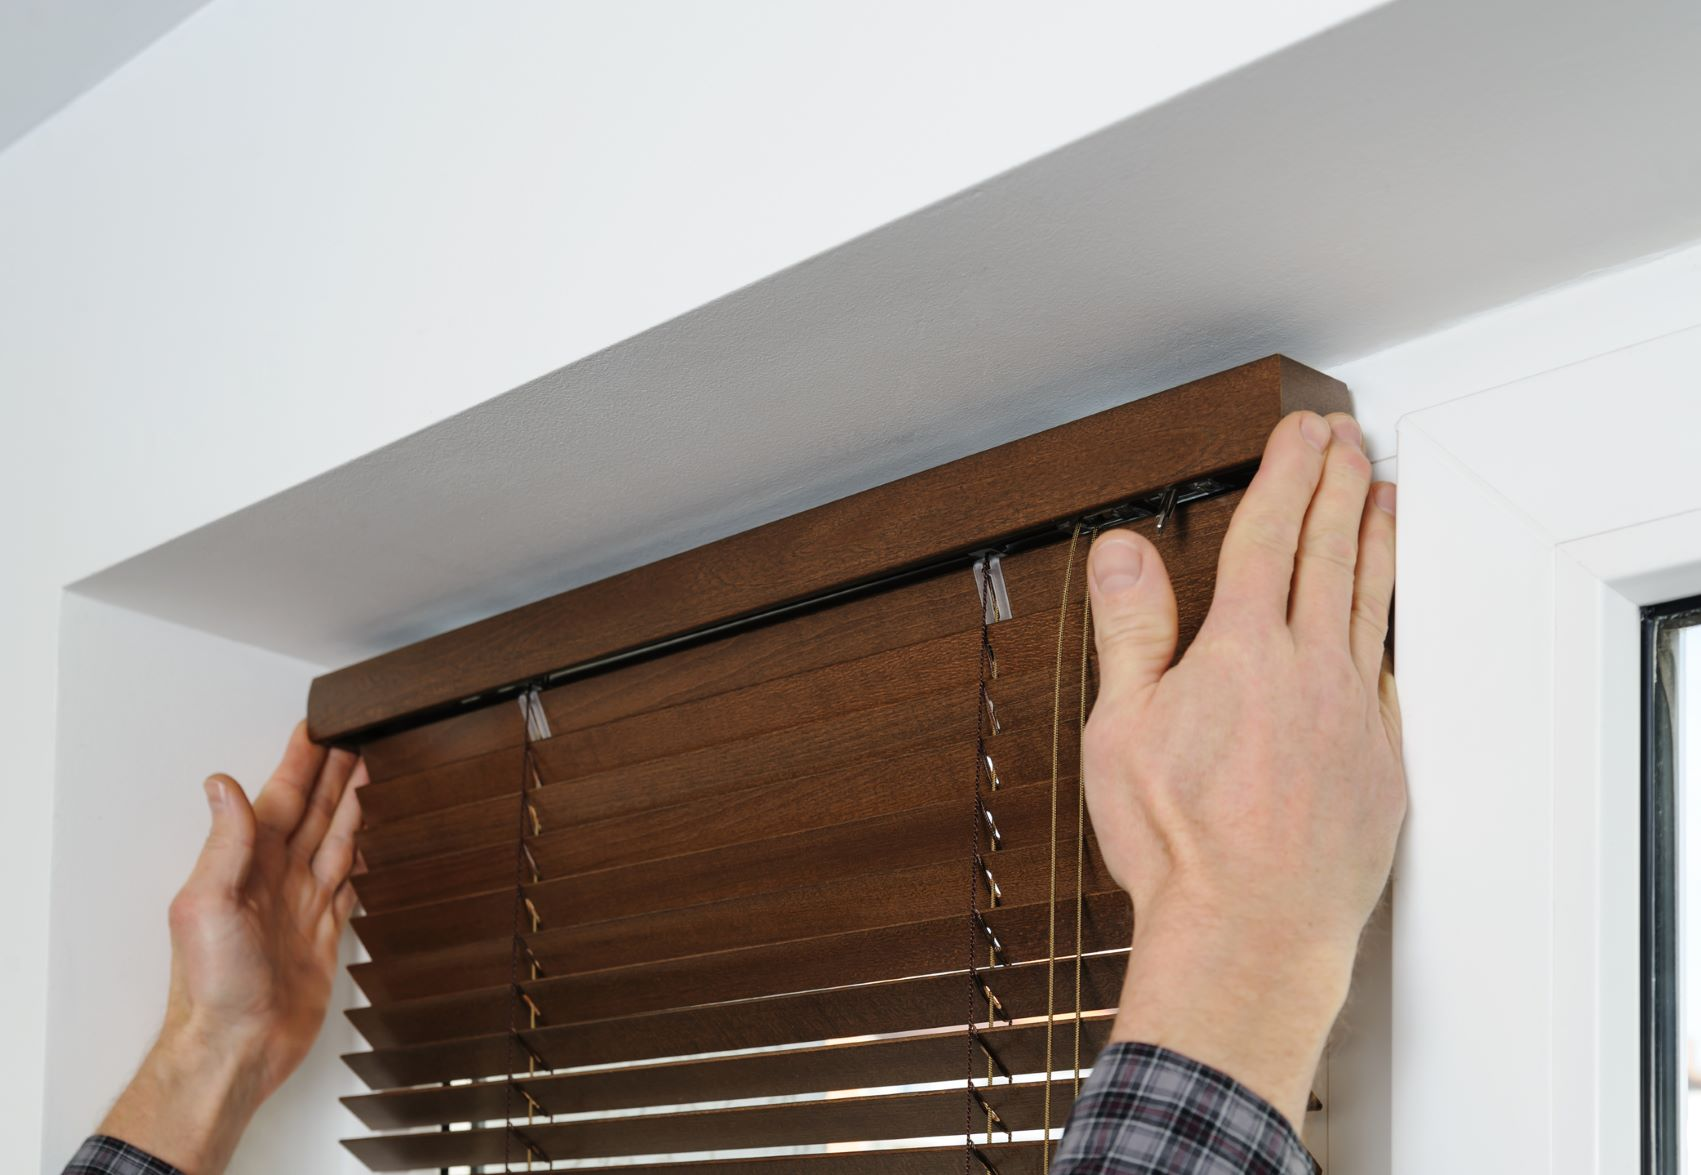 Things To Remember When Installing Your Blinds